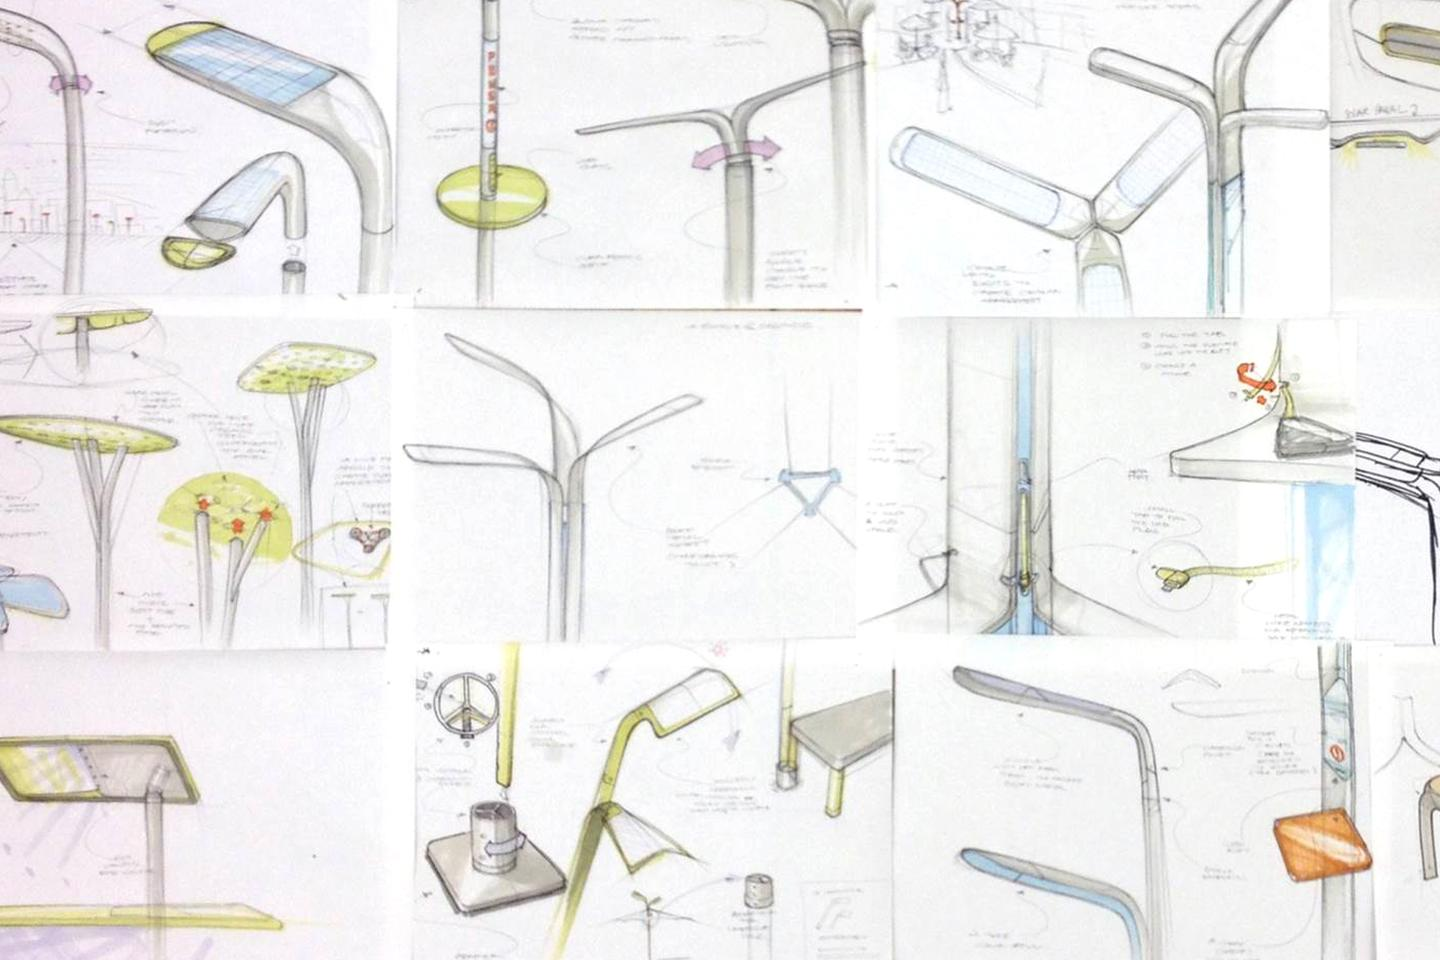 Pensa's early Street Charge design sketches